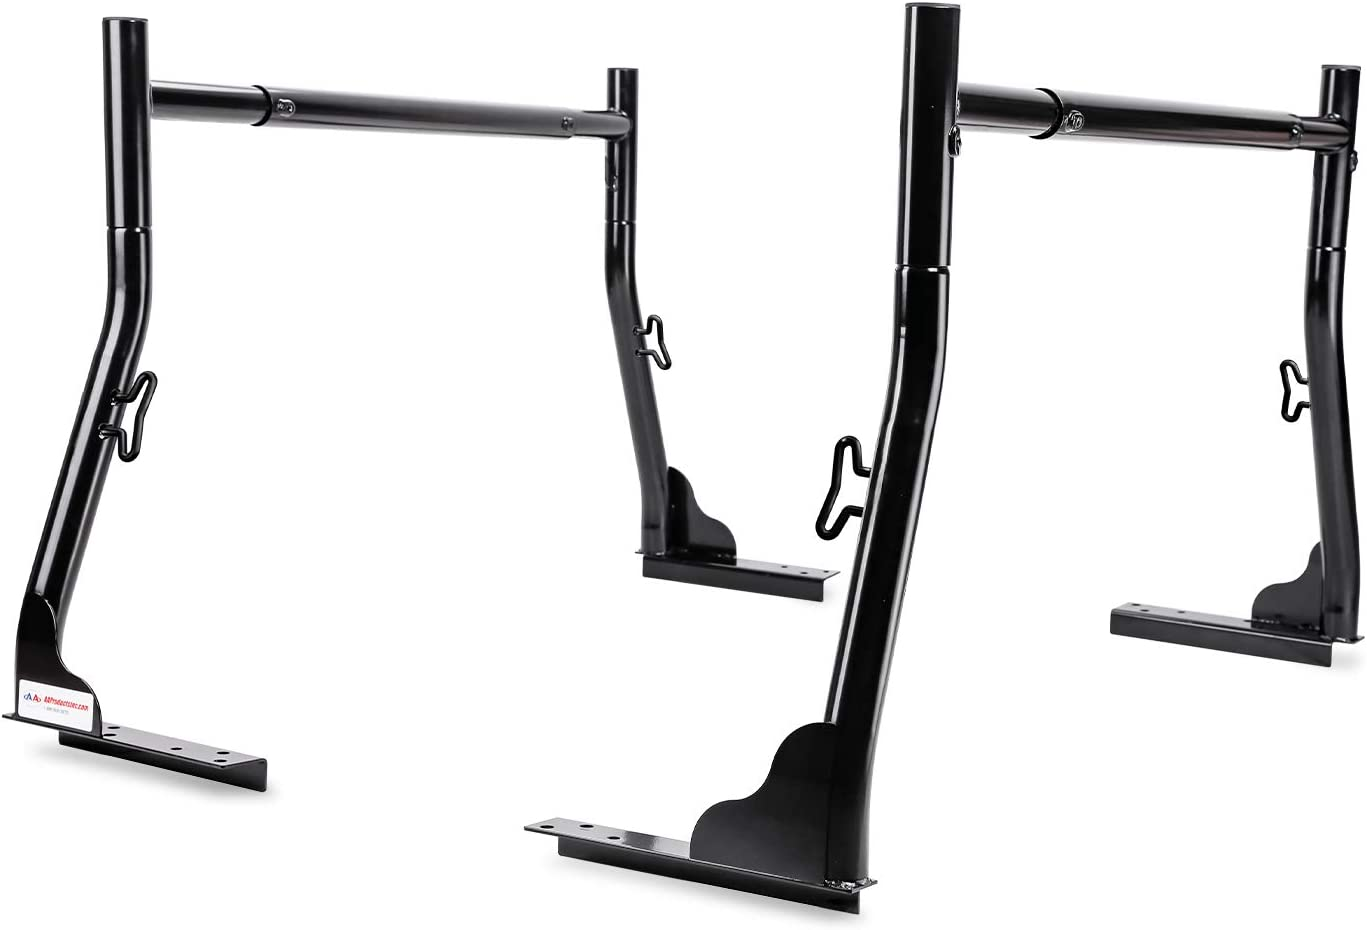 AA-Racks Model X31 800Ibs Capacity Max 62% OFF Truc Steel We OFFer at cheap prices Extendable Pick-Up